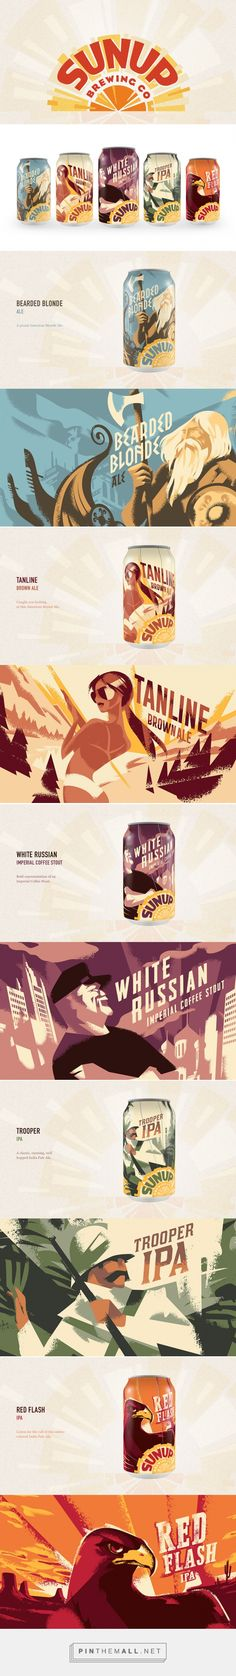 SunUp Brewing Co.         on          Packaging of the World - Creative Package Design Gallery - created via https://pinthemall.net